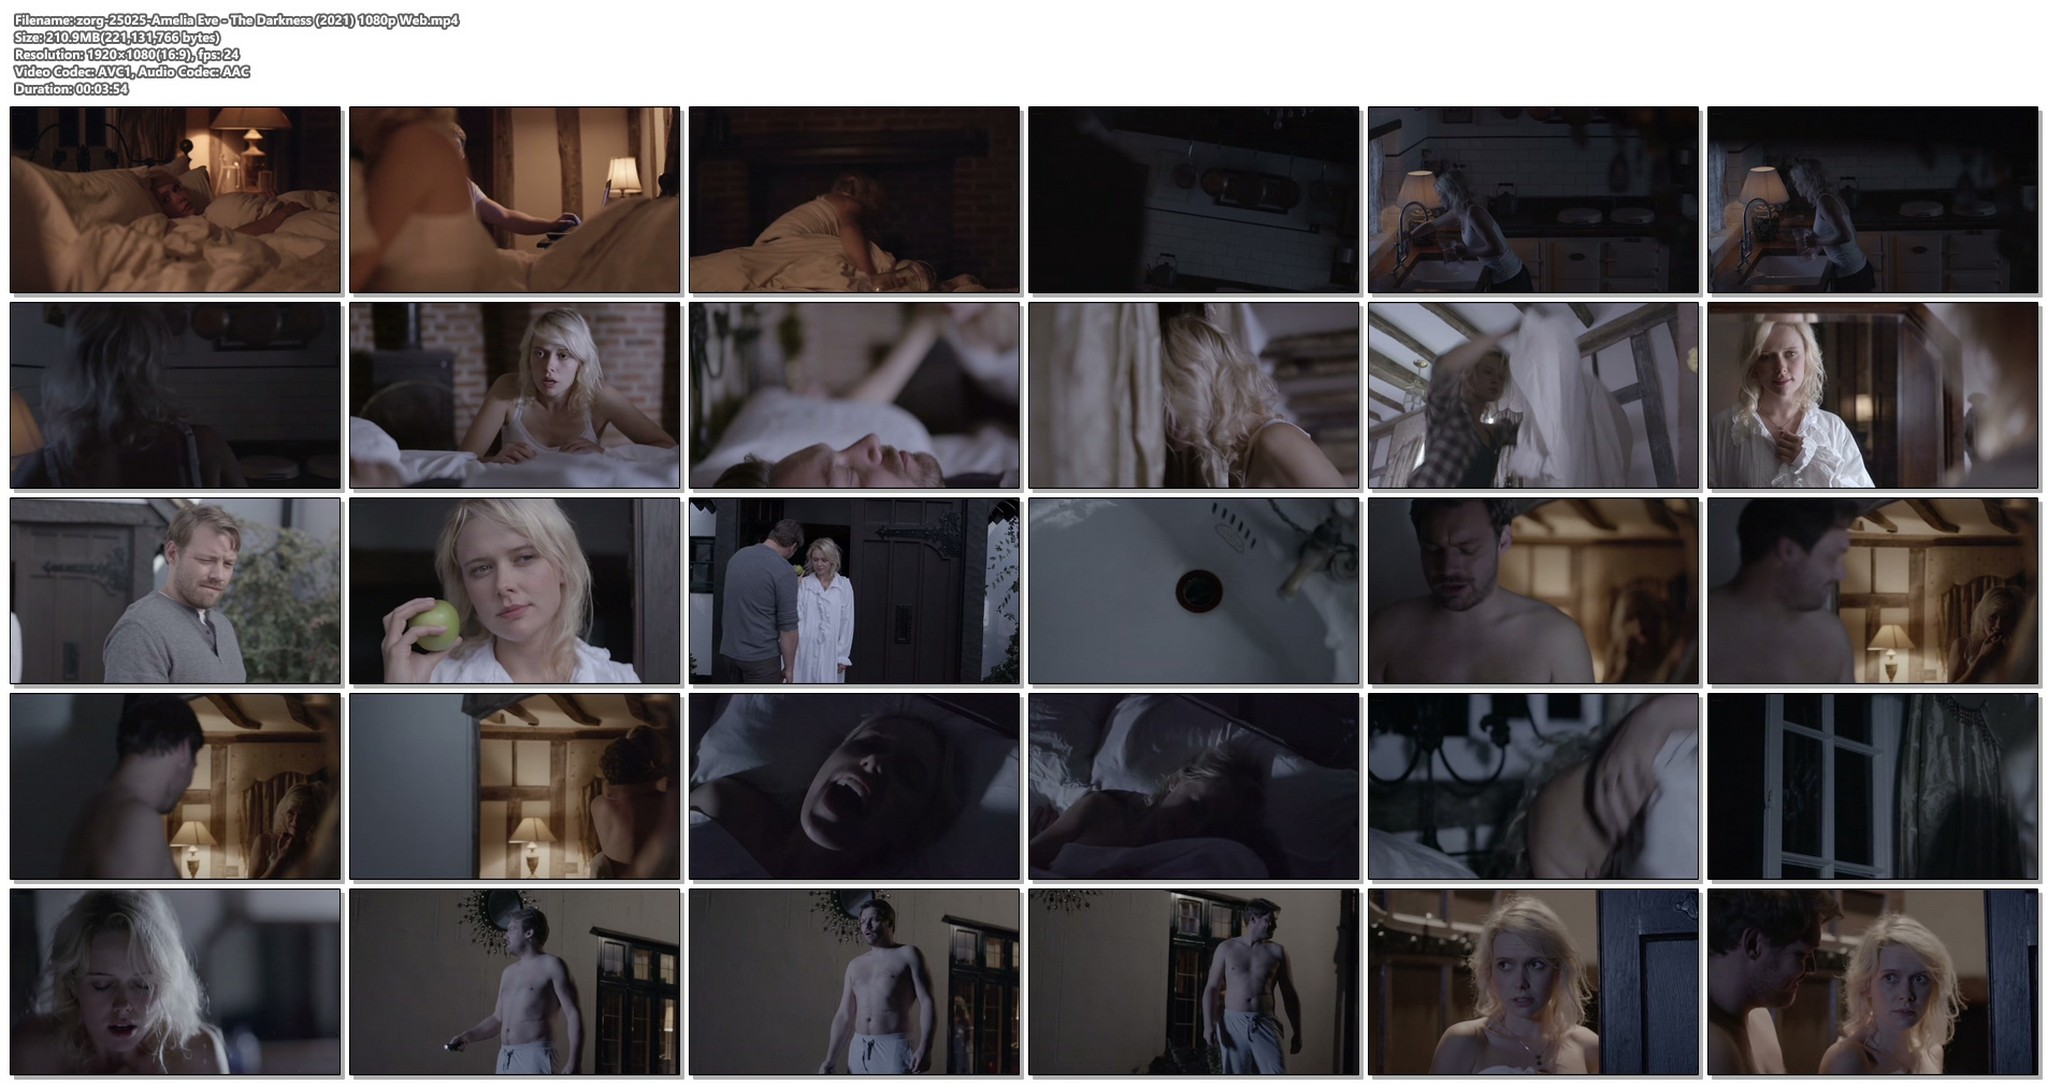 Amelia Eve cute and some sex The Darkness 2021 1080p Web 10